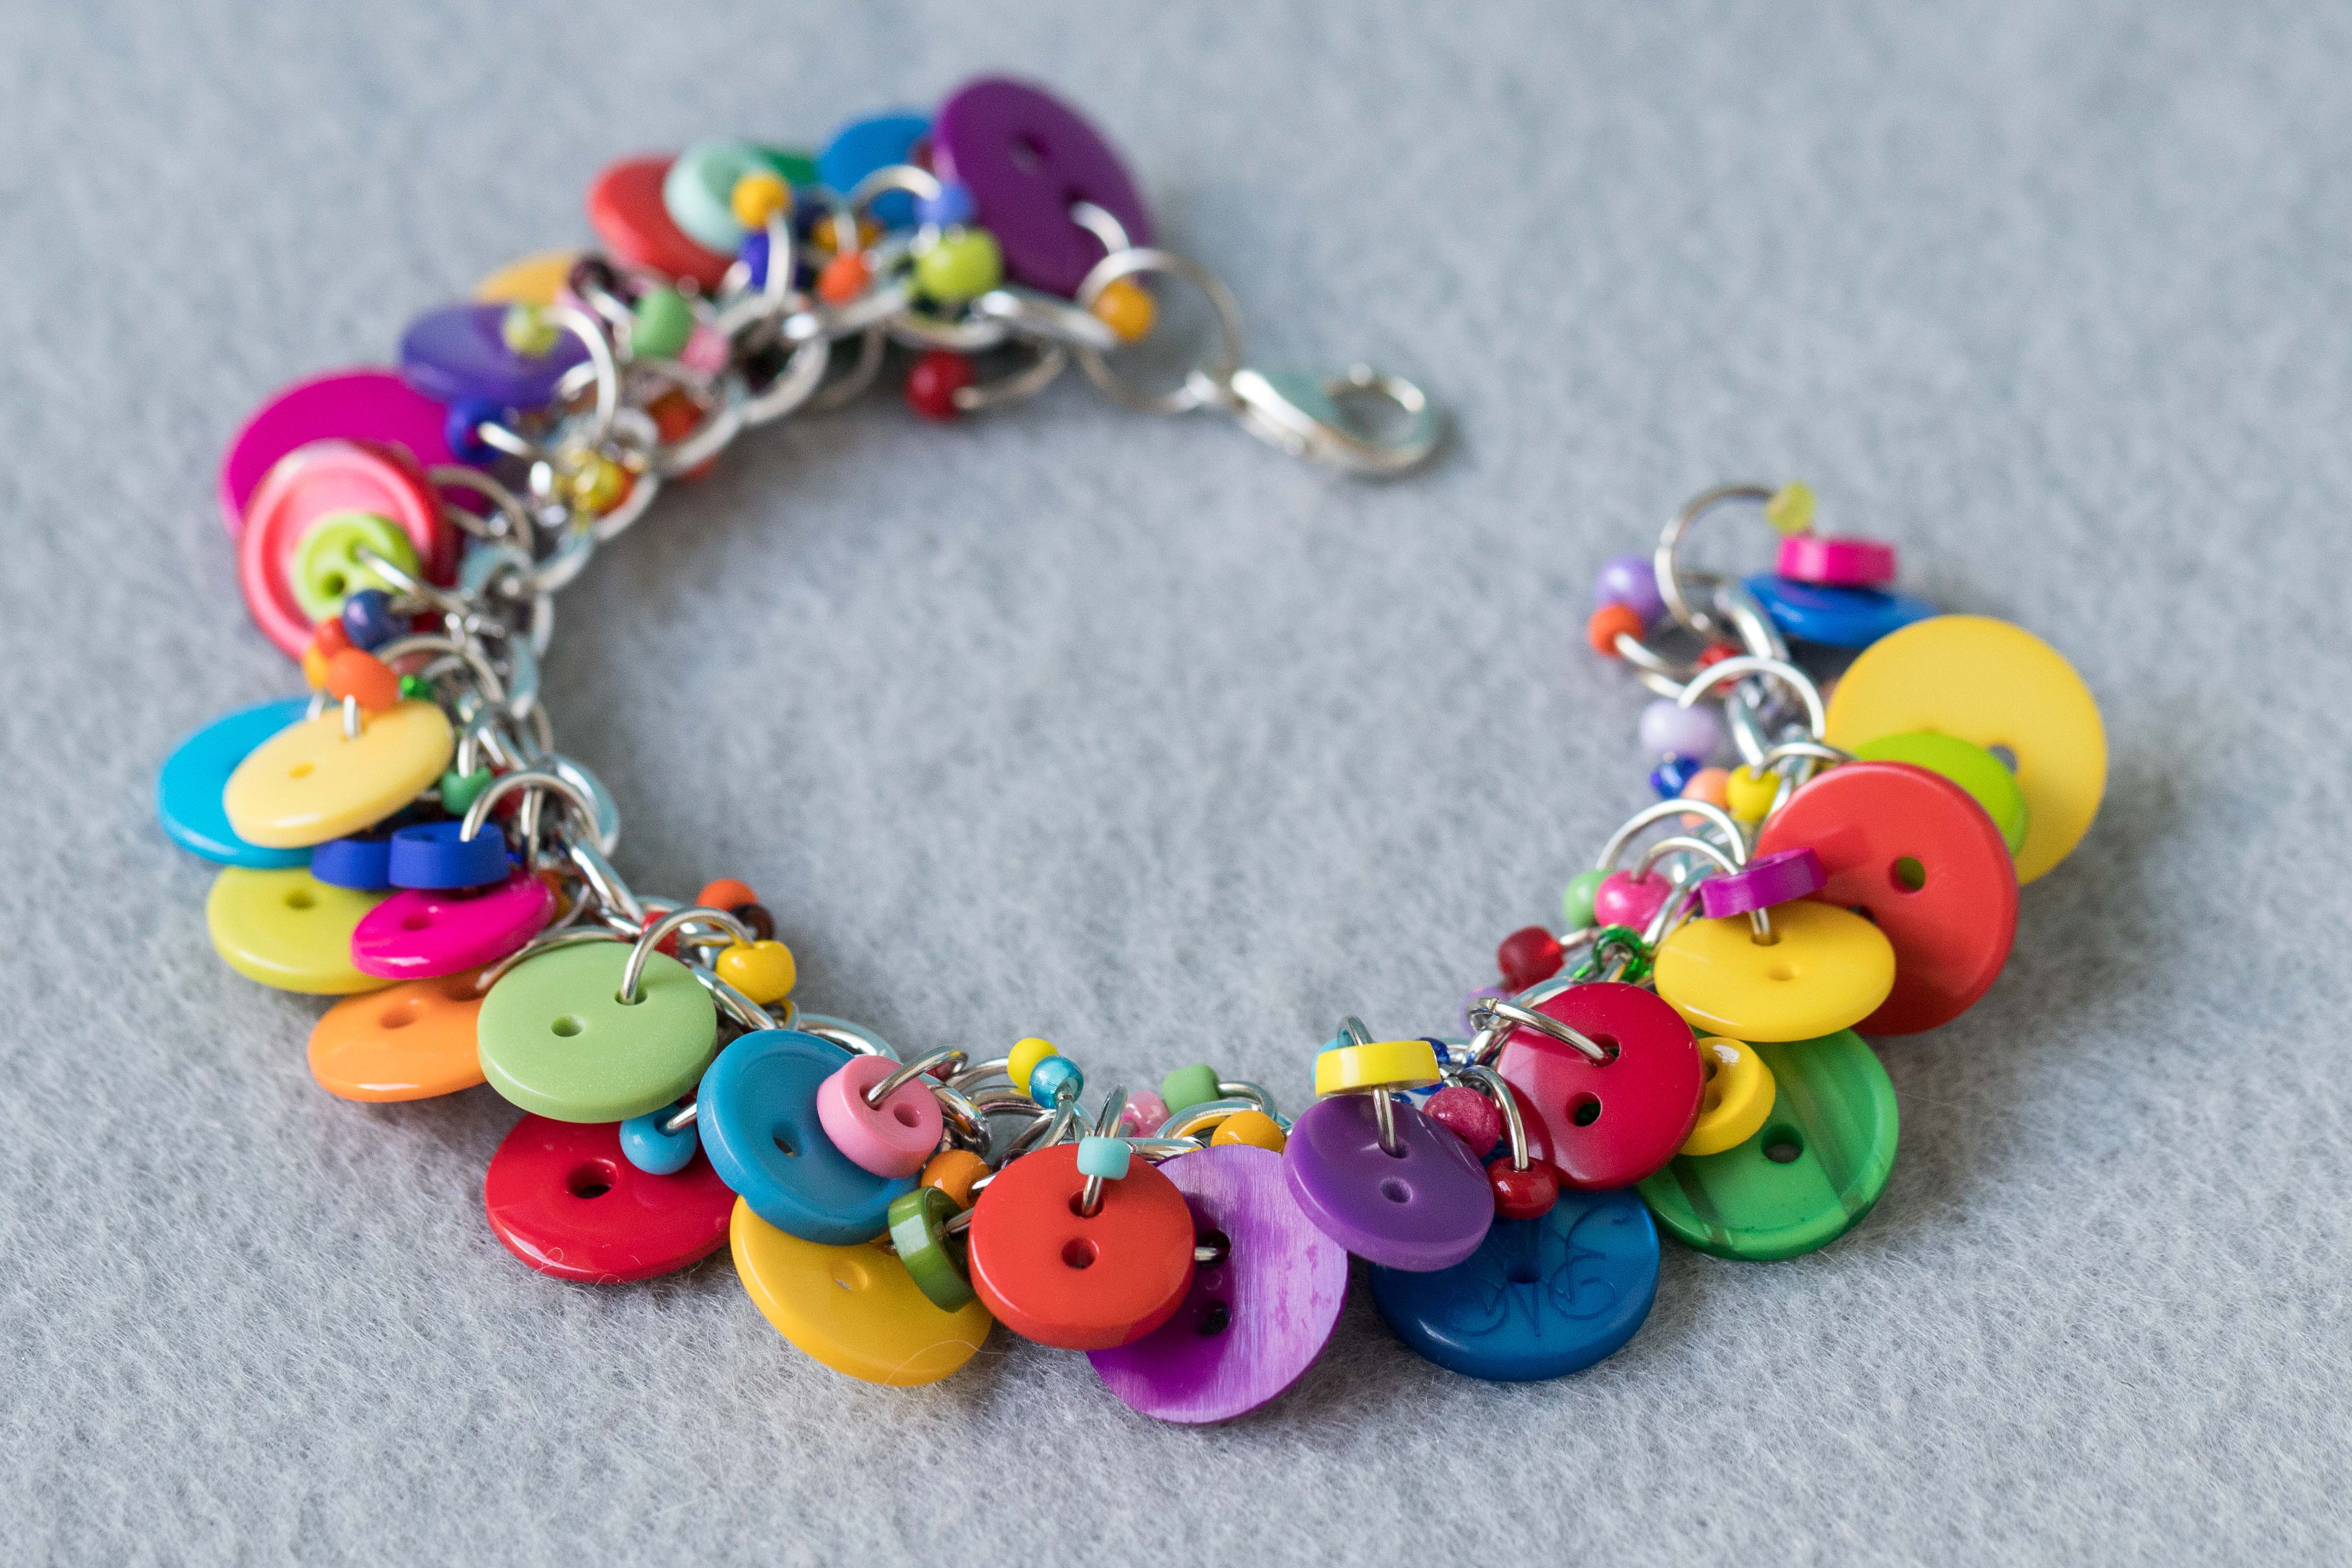 Button Charm Bracelet Bright Colorful Jewelry Fun Multicolored Rainbow Piece by randomcreative on Etsy | https://www.roseclearfield.com